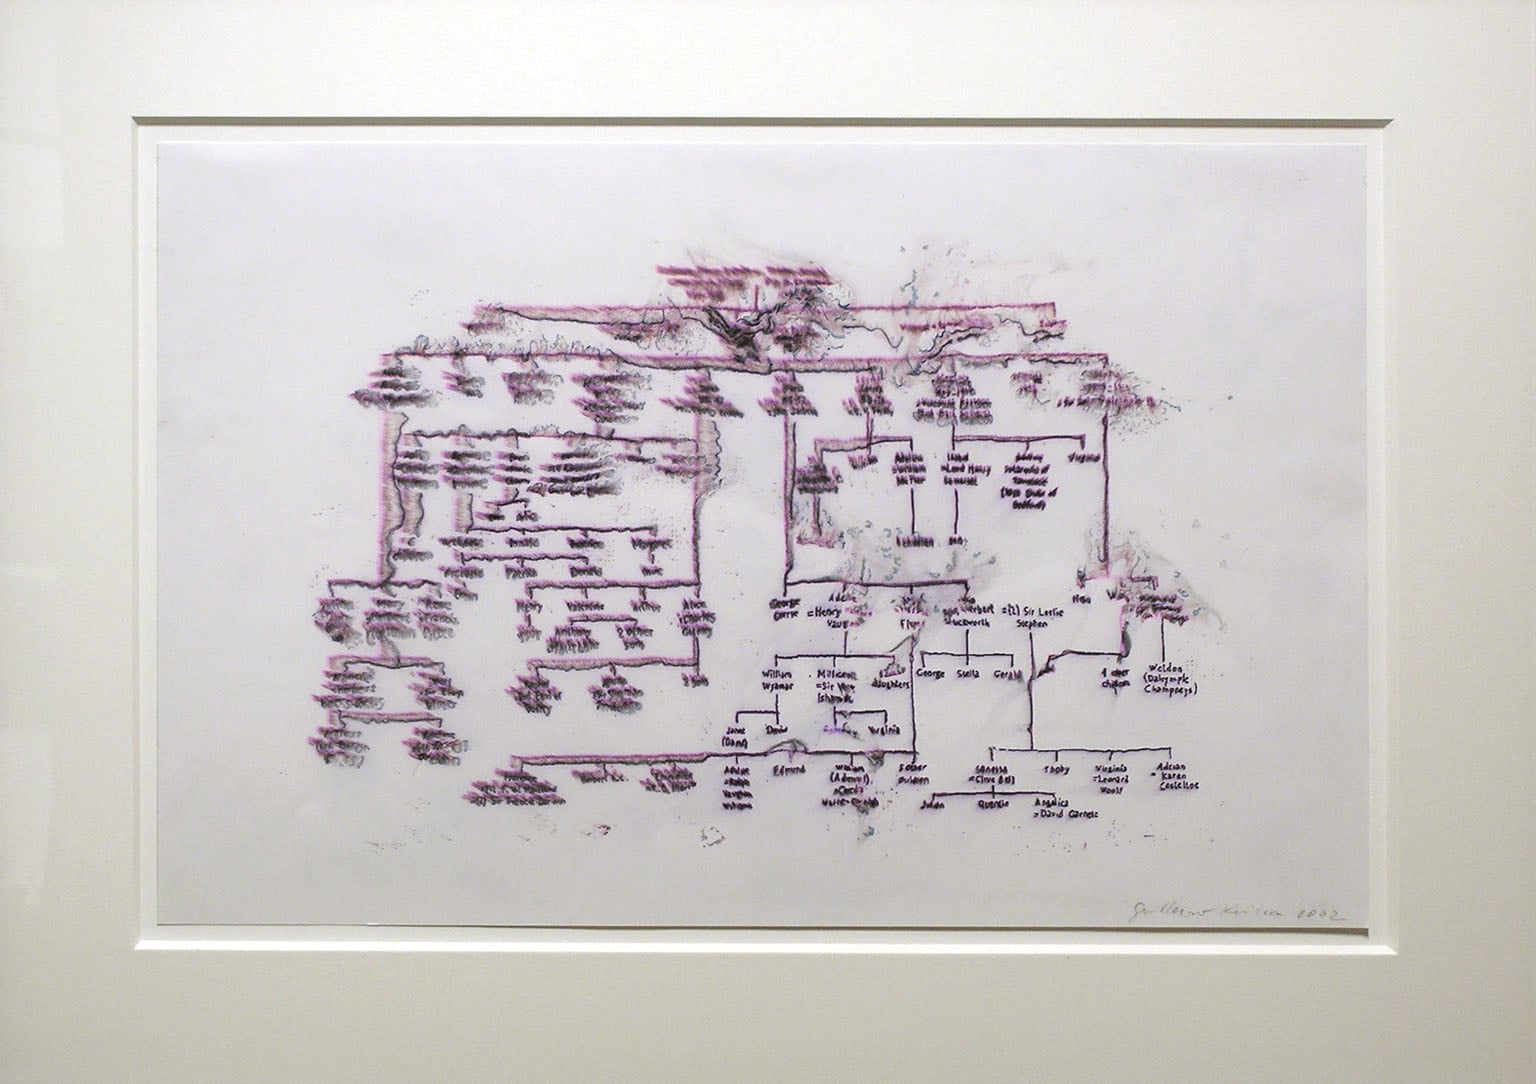 1) People on Fire; 2) Untitled (City Plan)